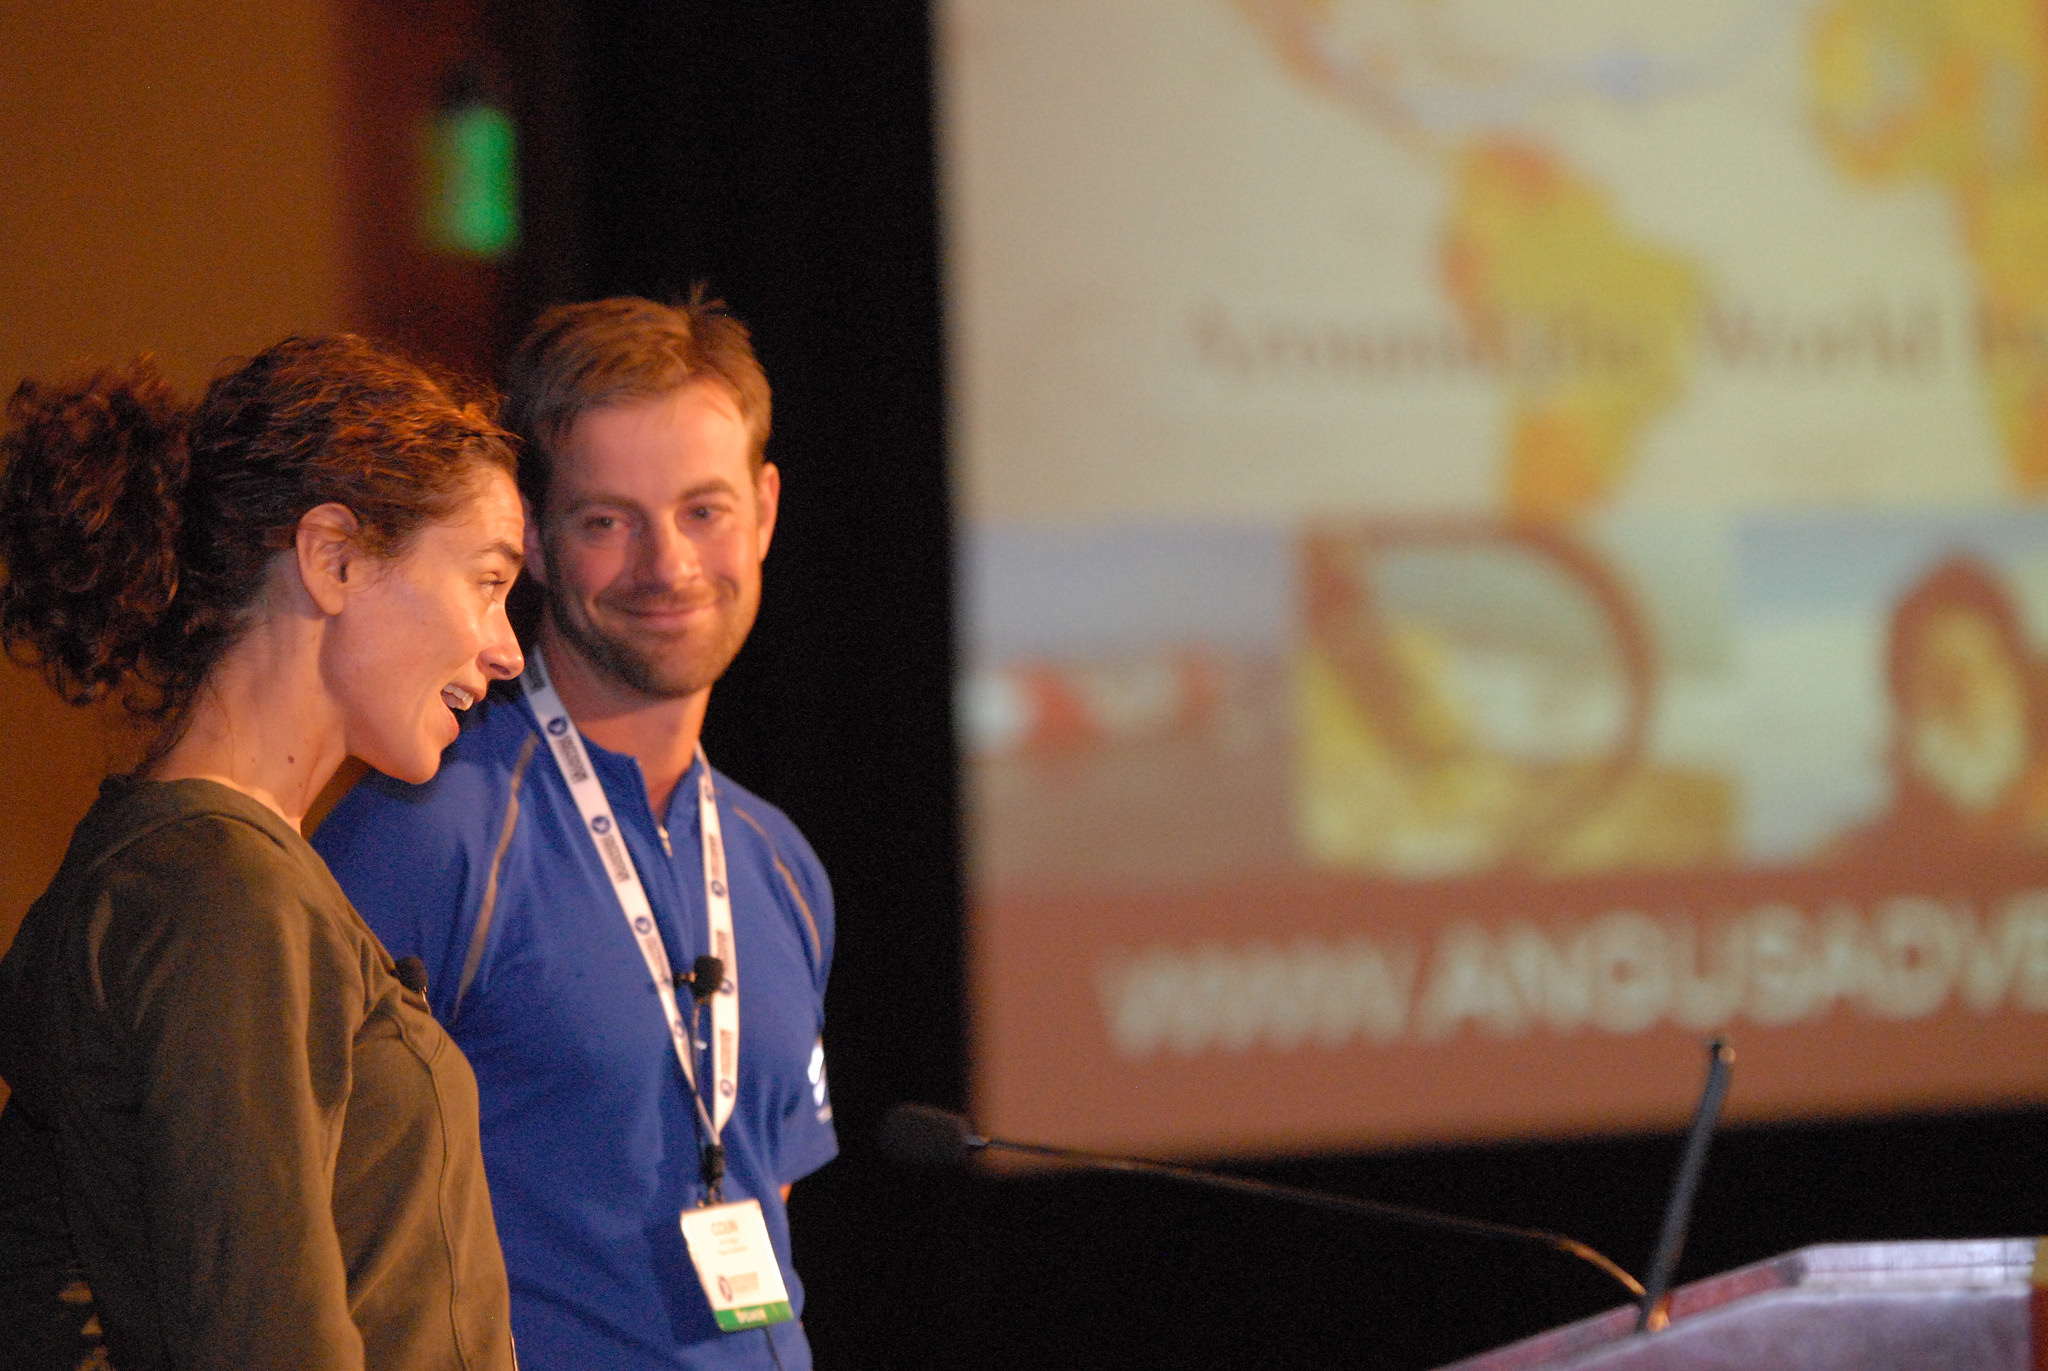 keynote topics angus adventures choosing the right keynote speech topic is crucial to the success of your event we will work you to create a personalized presentation that draws on